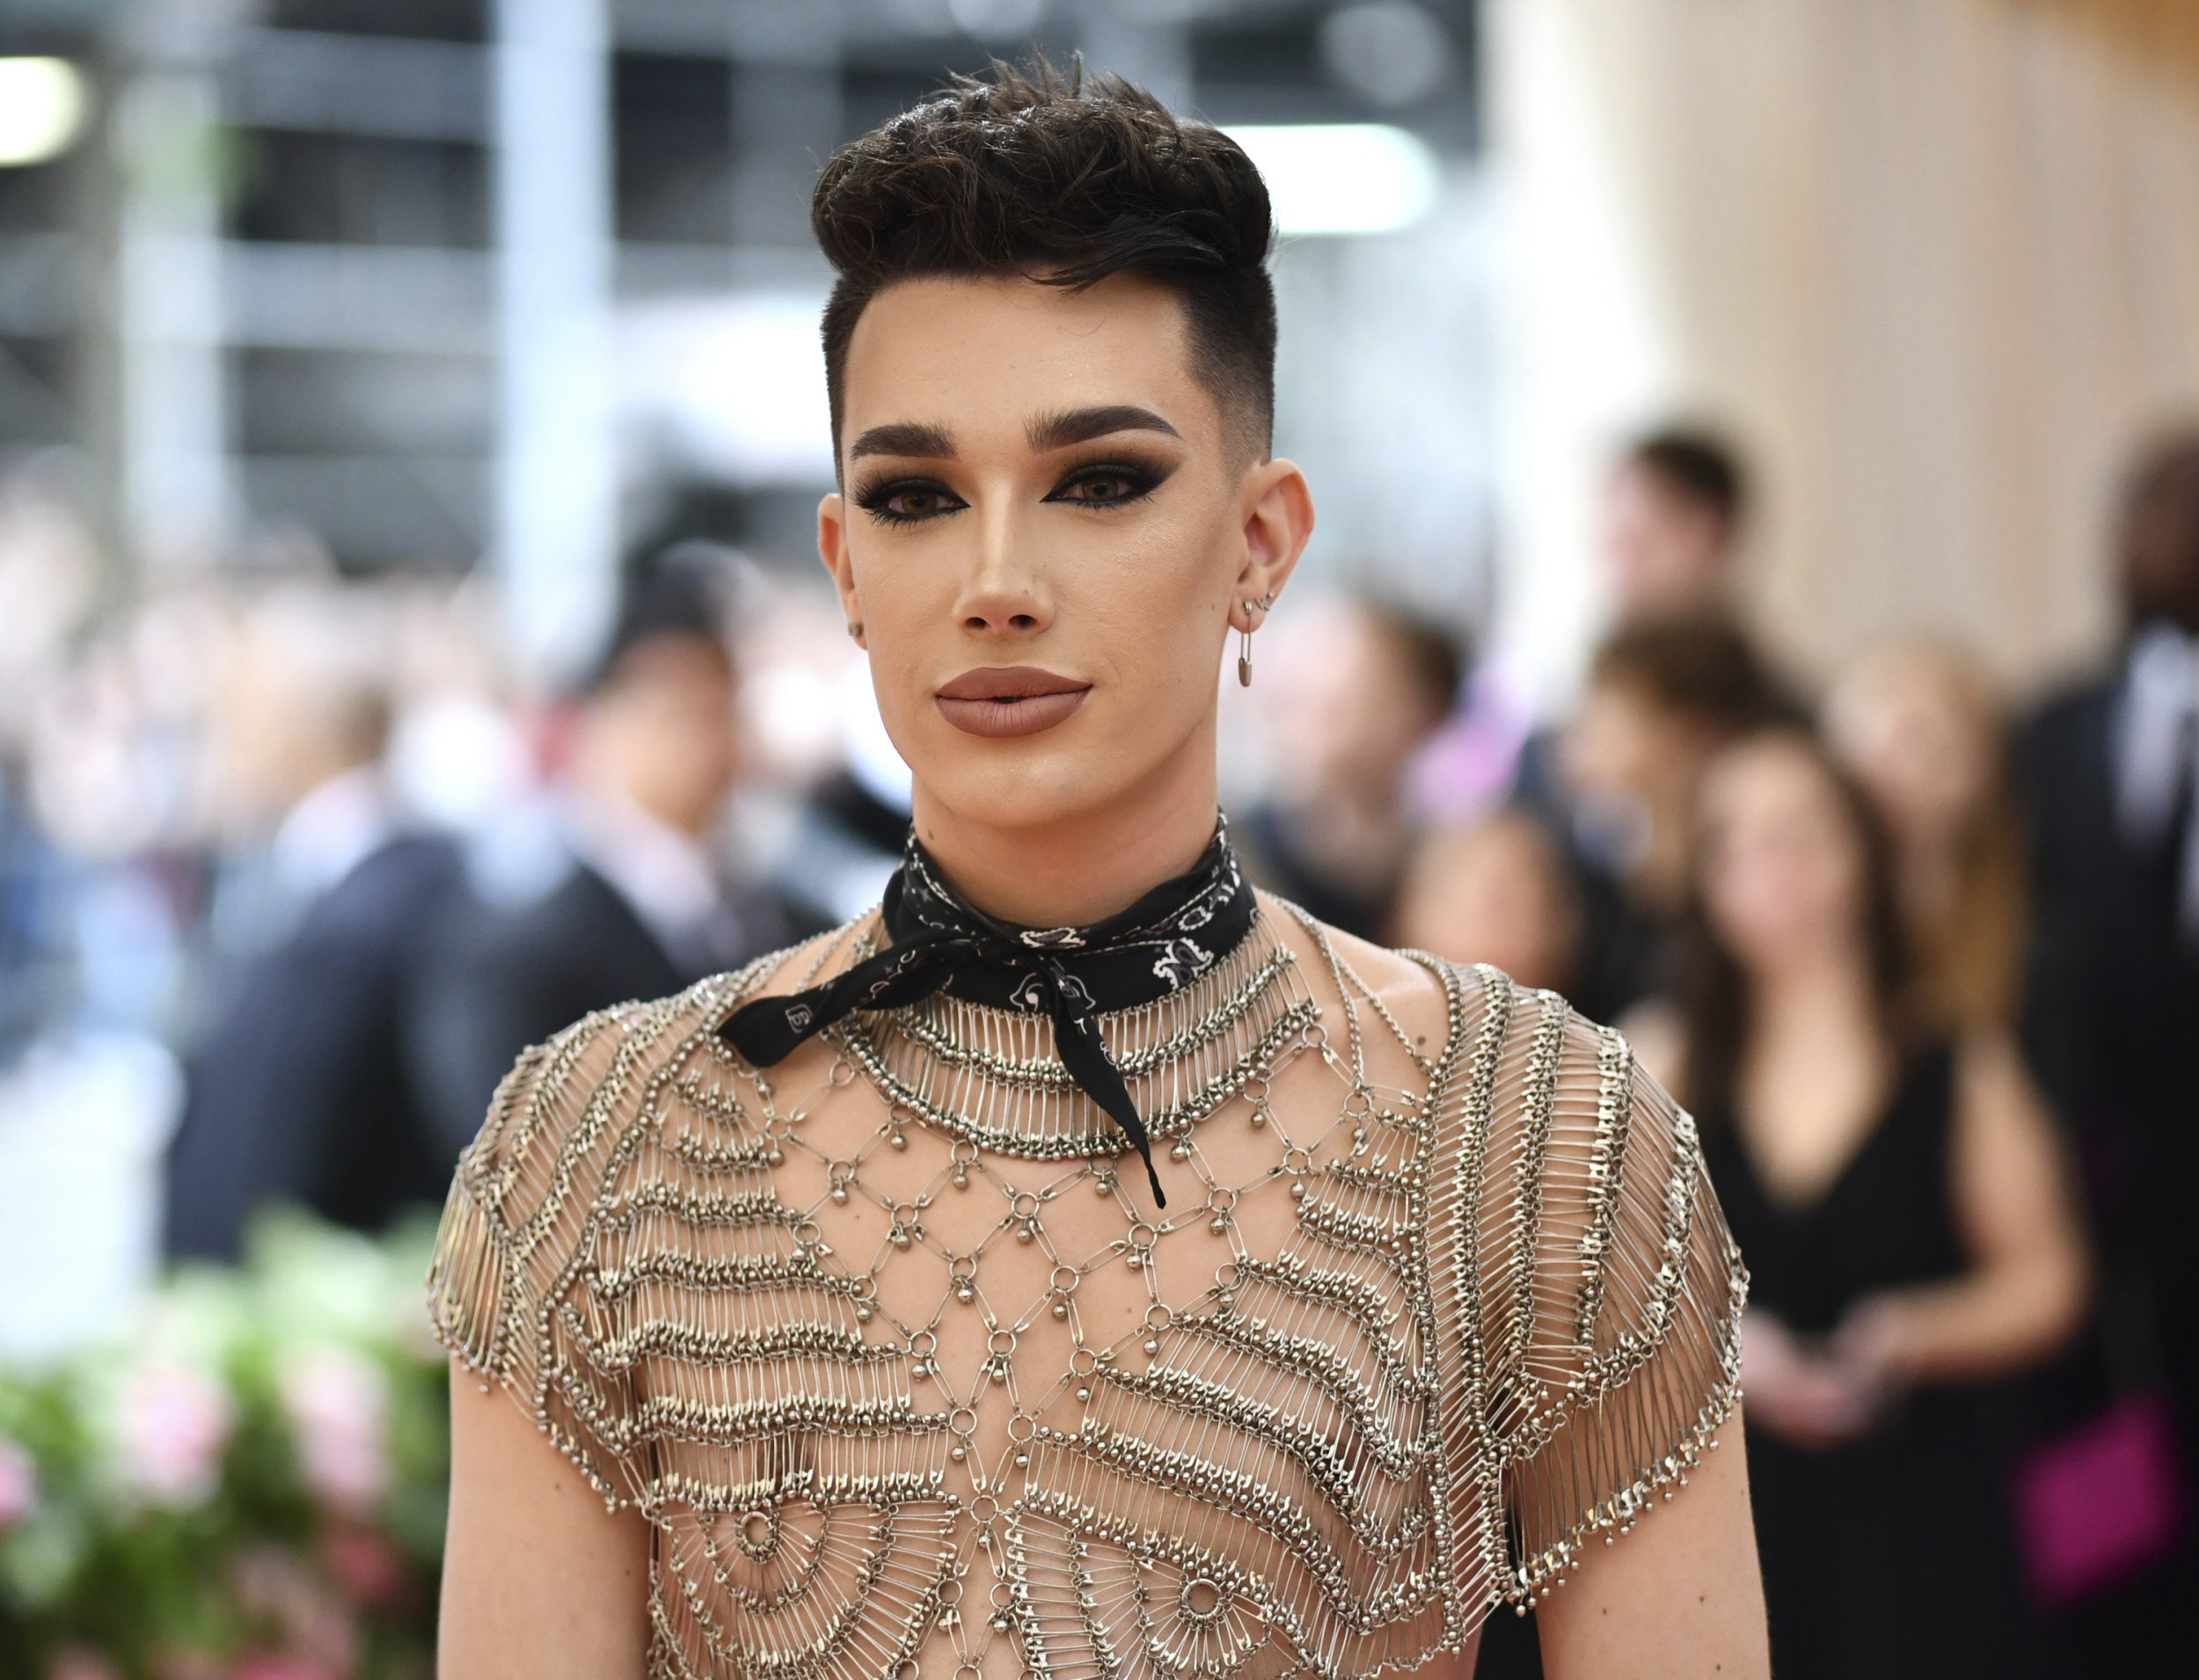 """James Charles attends The Metropolitan Museum of Art's Costume Institute benefit gala celebrating the opening of the """"Camp: Notes on Fashion"""" exhibition on Monday, May 6, 2019, in New York. (Photo by Charles Sykes/Invision/AP)"""